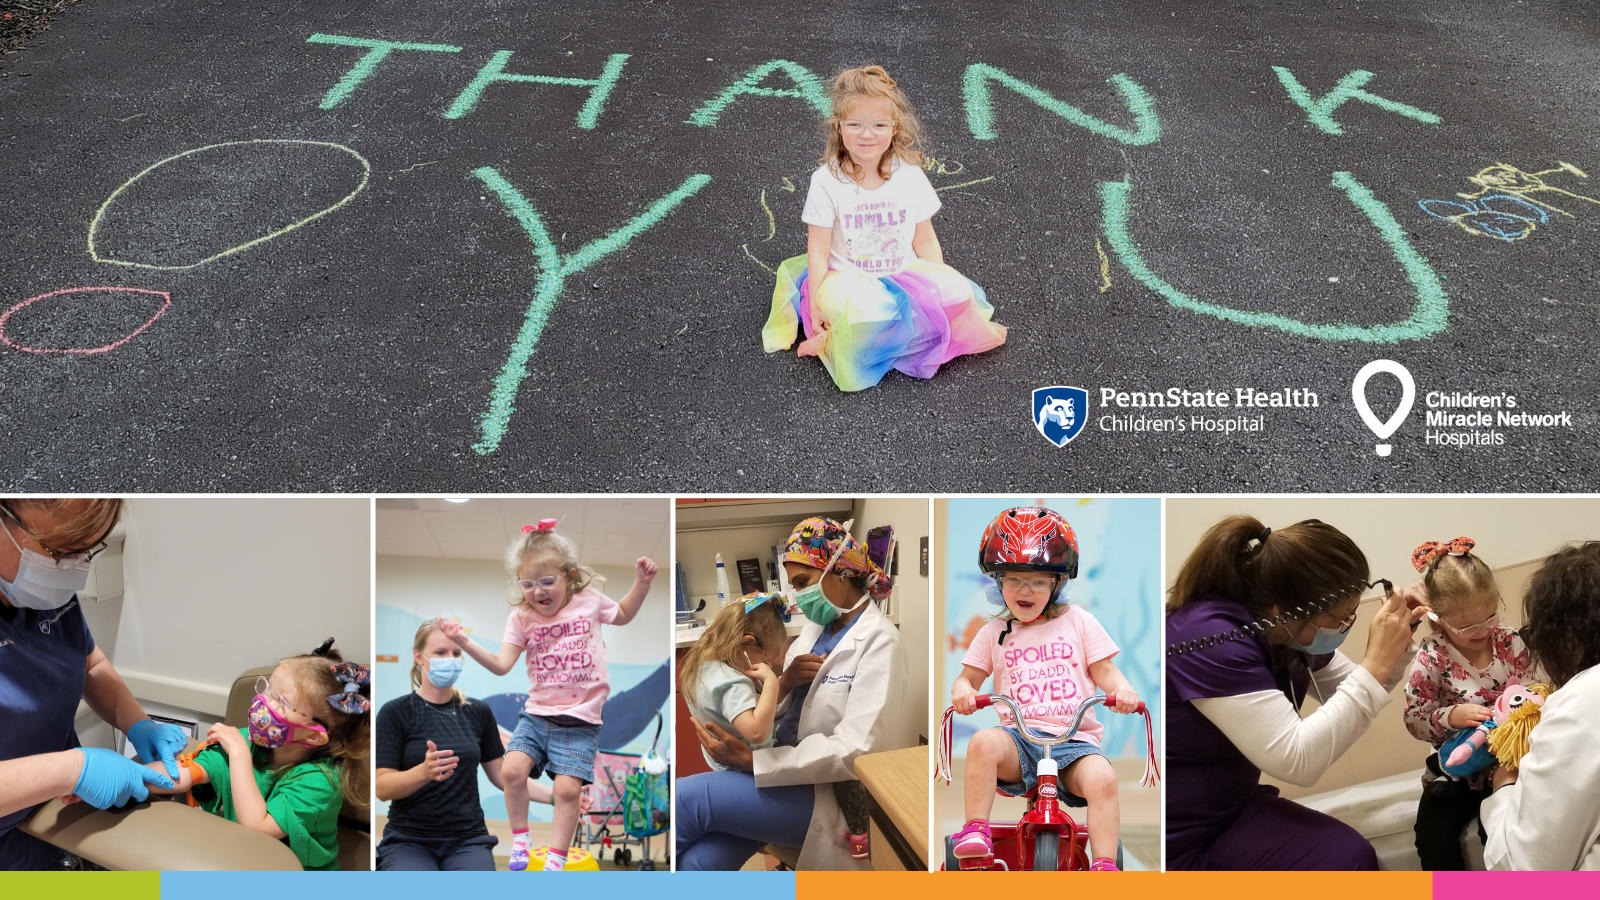 A composite image with several photos of a young girl participating in various activities. In a horizontal photo across the top half, she is sitting amid a chalk drawing reading